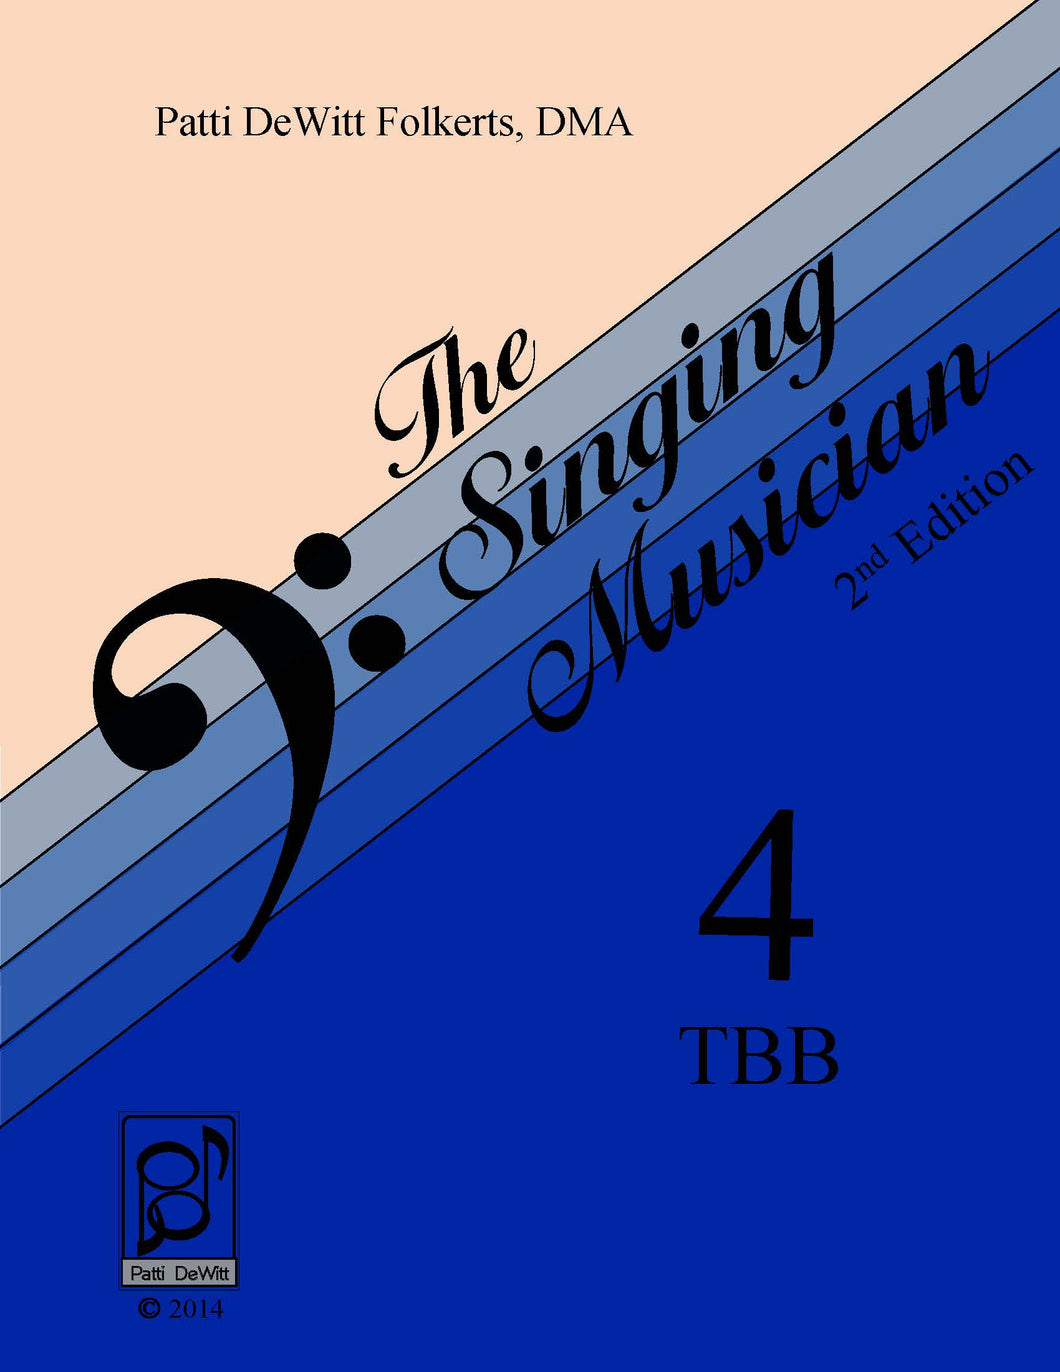 The Singing Musician—Level 4: The Choral Virtuoso TBB Student Edition